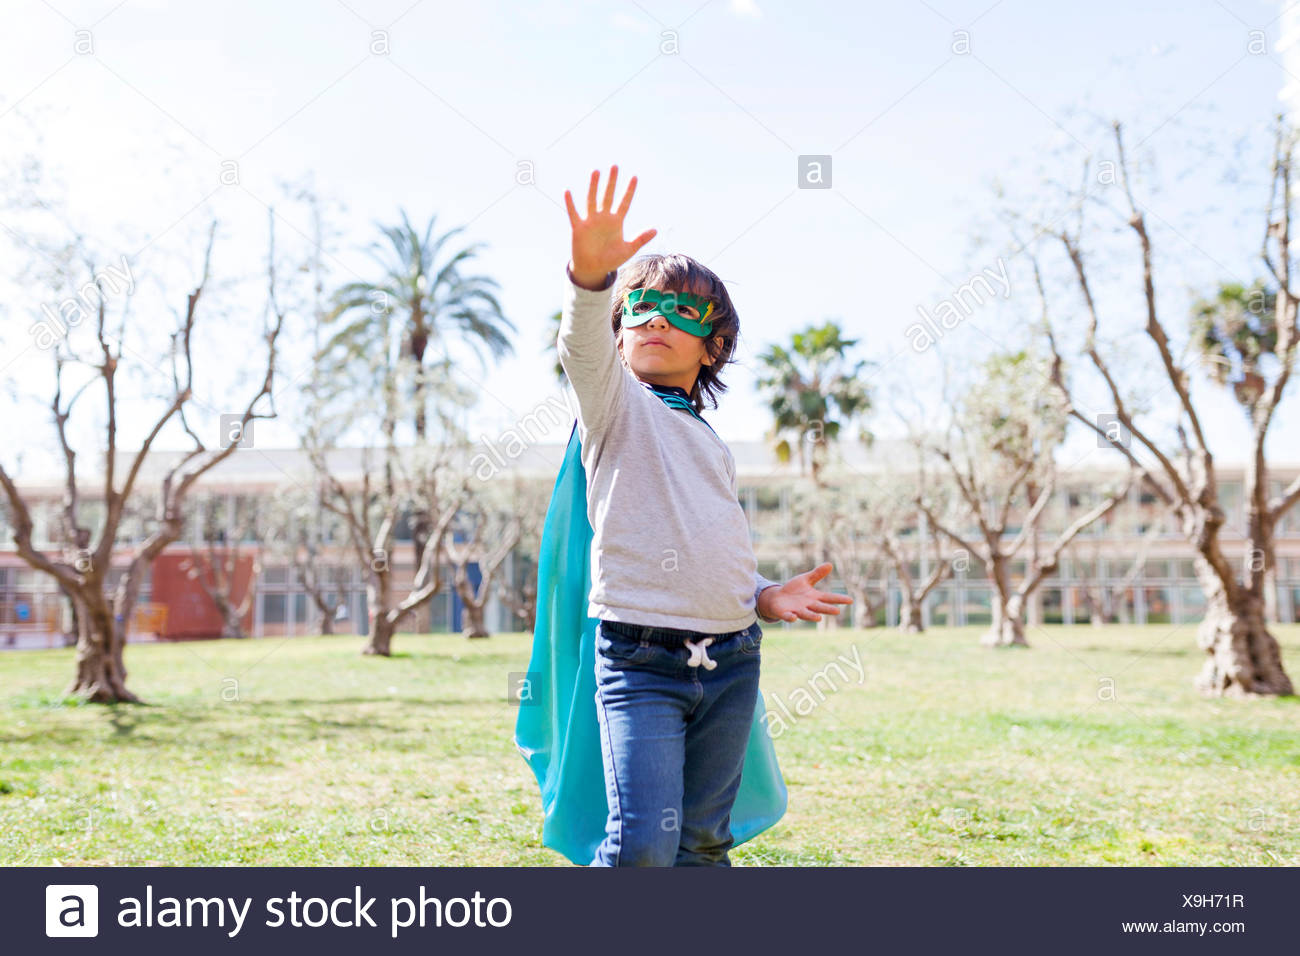 Little boy dressed up as a superhero posing on a meadow - Stock Image